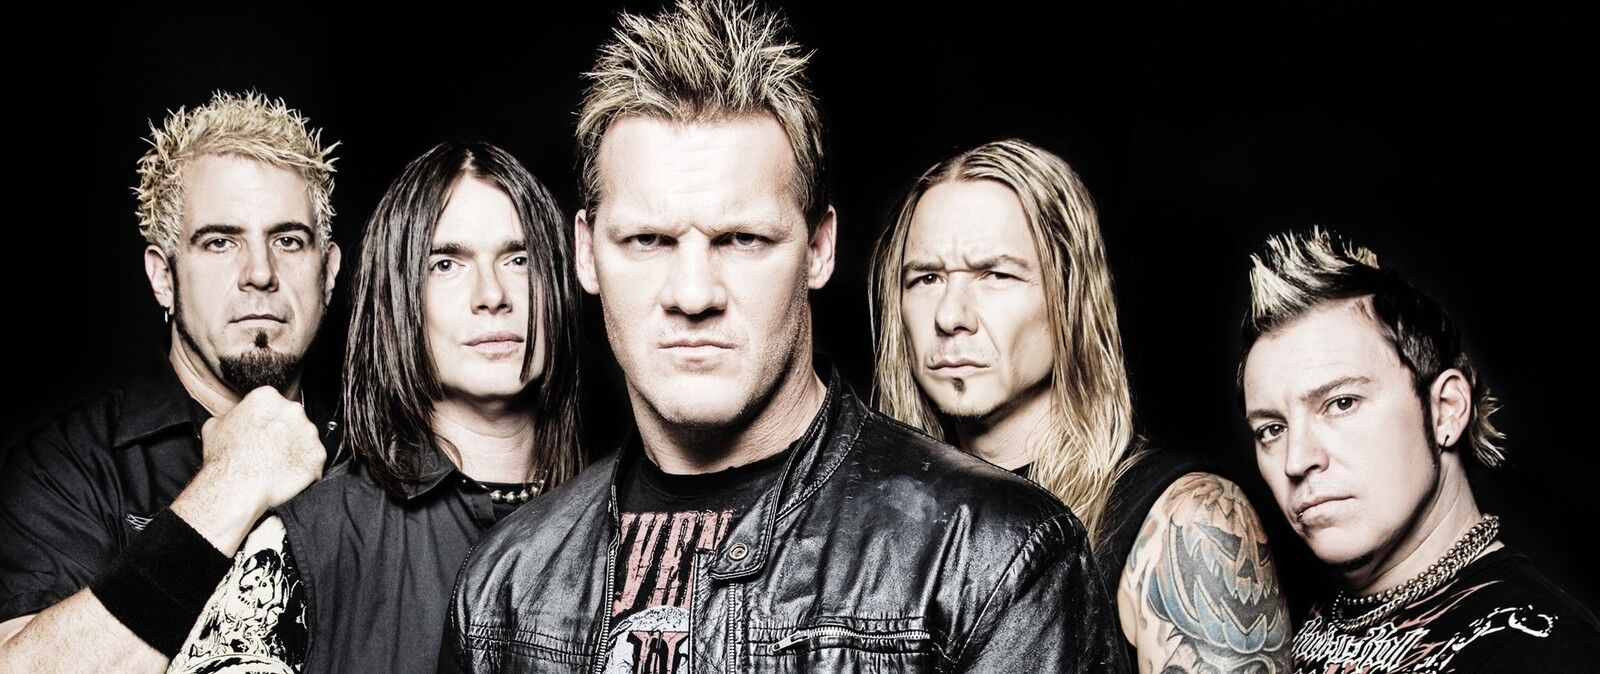 FOZZY featuring Adelita's Way, Stone Broken and The Stir Tickets (21+ Event)